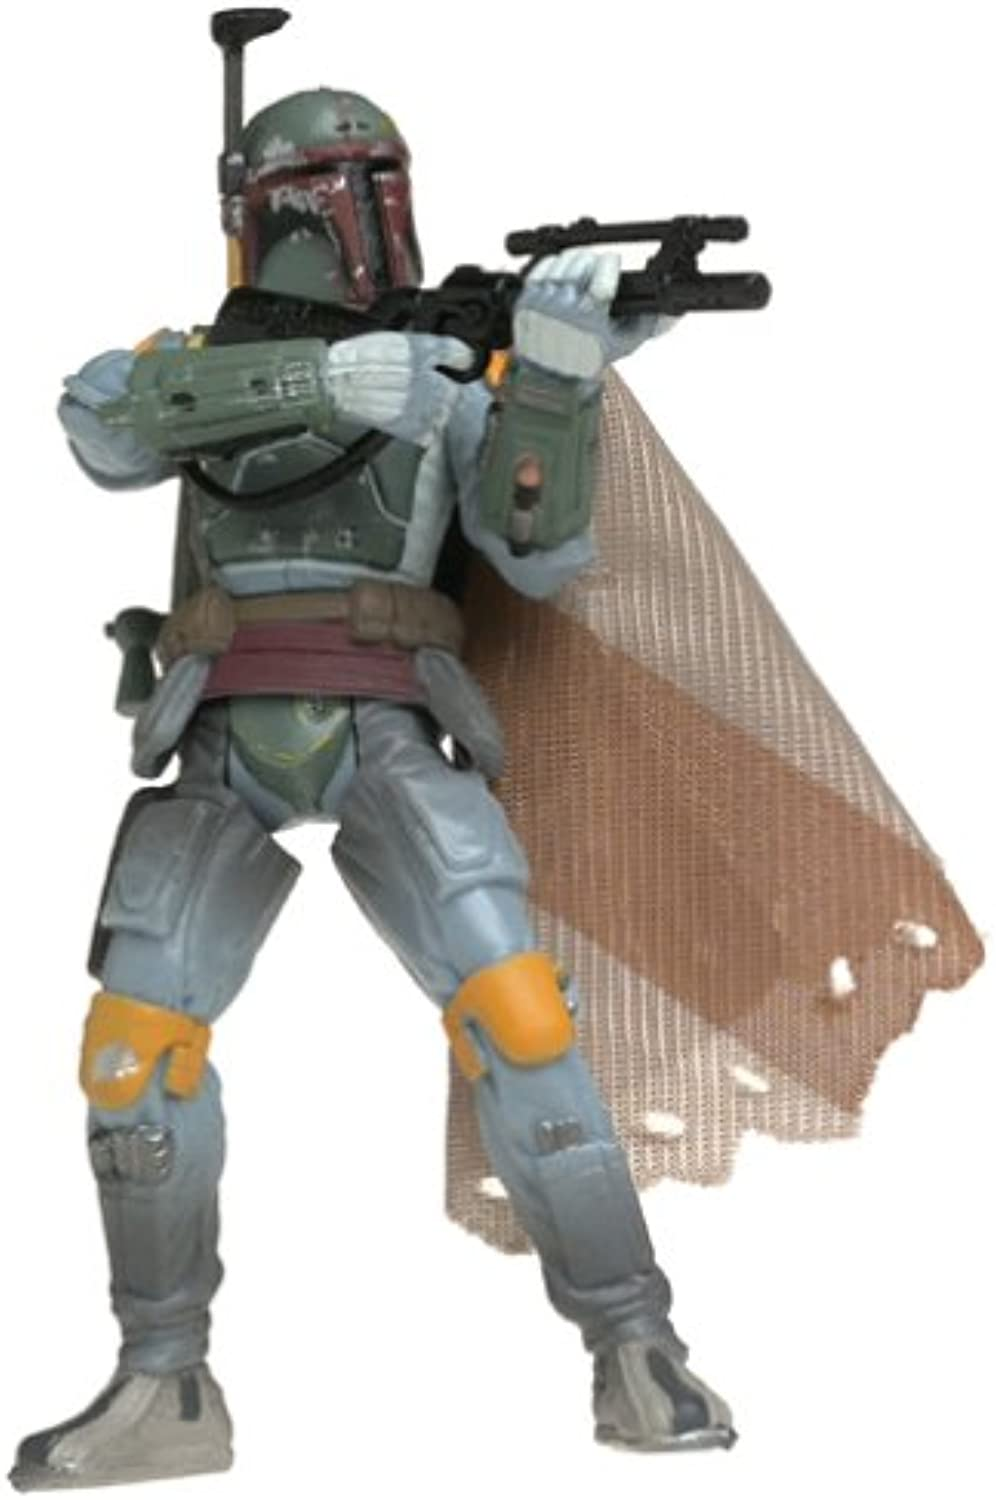 Toy Rocket Star Wars 300th Edition Boba Fett figure